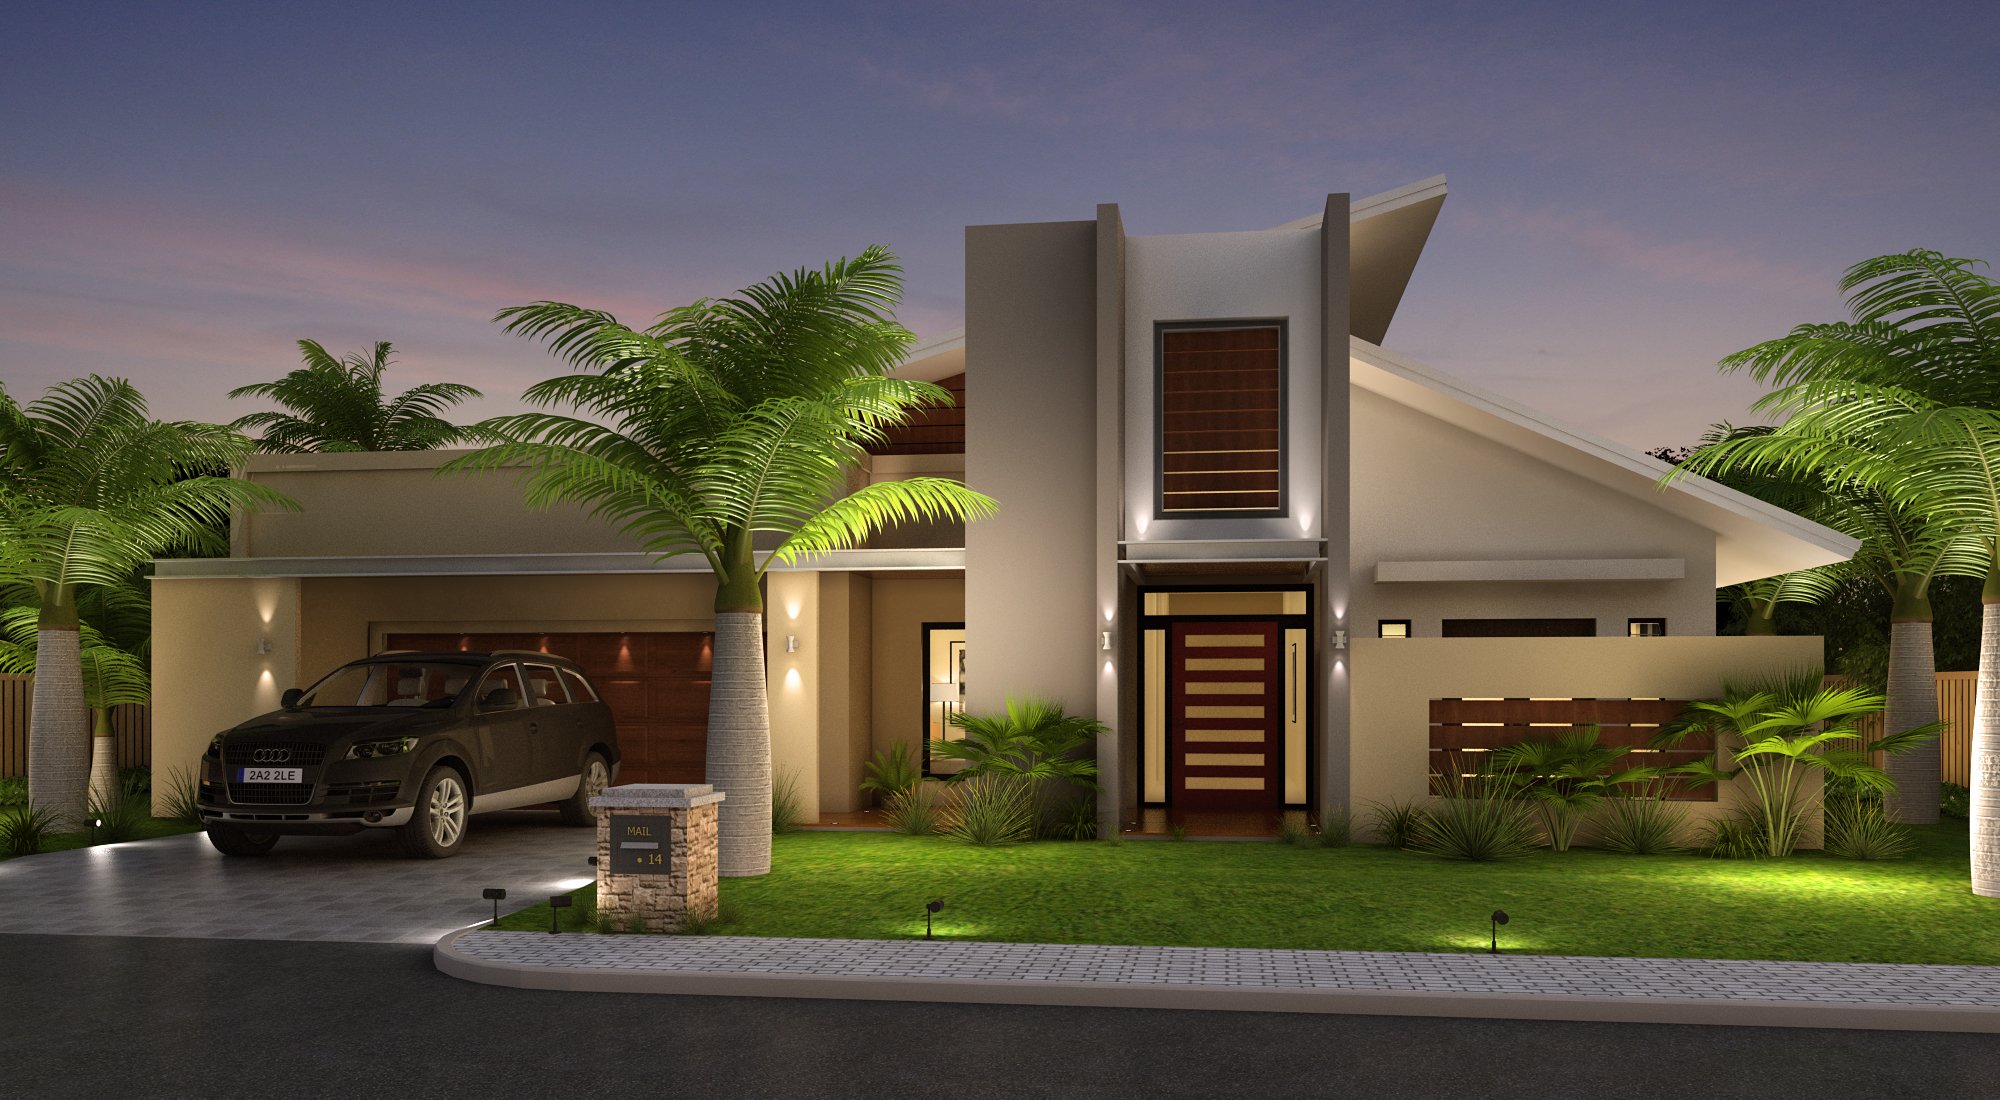 Beautiful home front elevation designs and ideas for Images of front view of beautiful modern houses